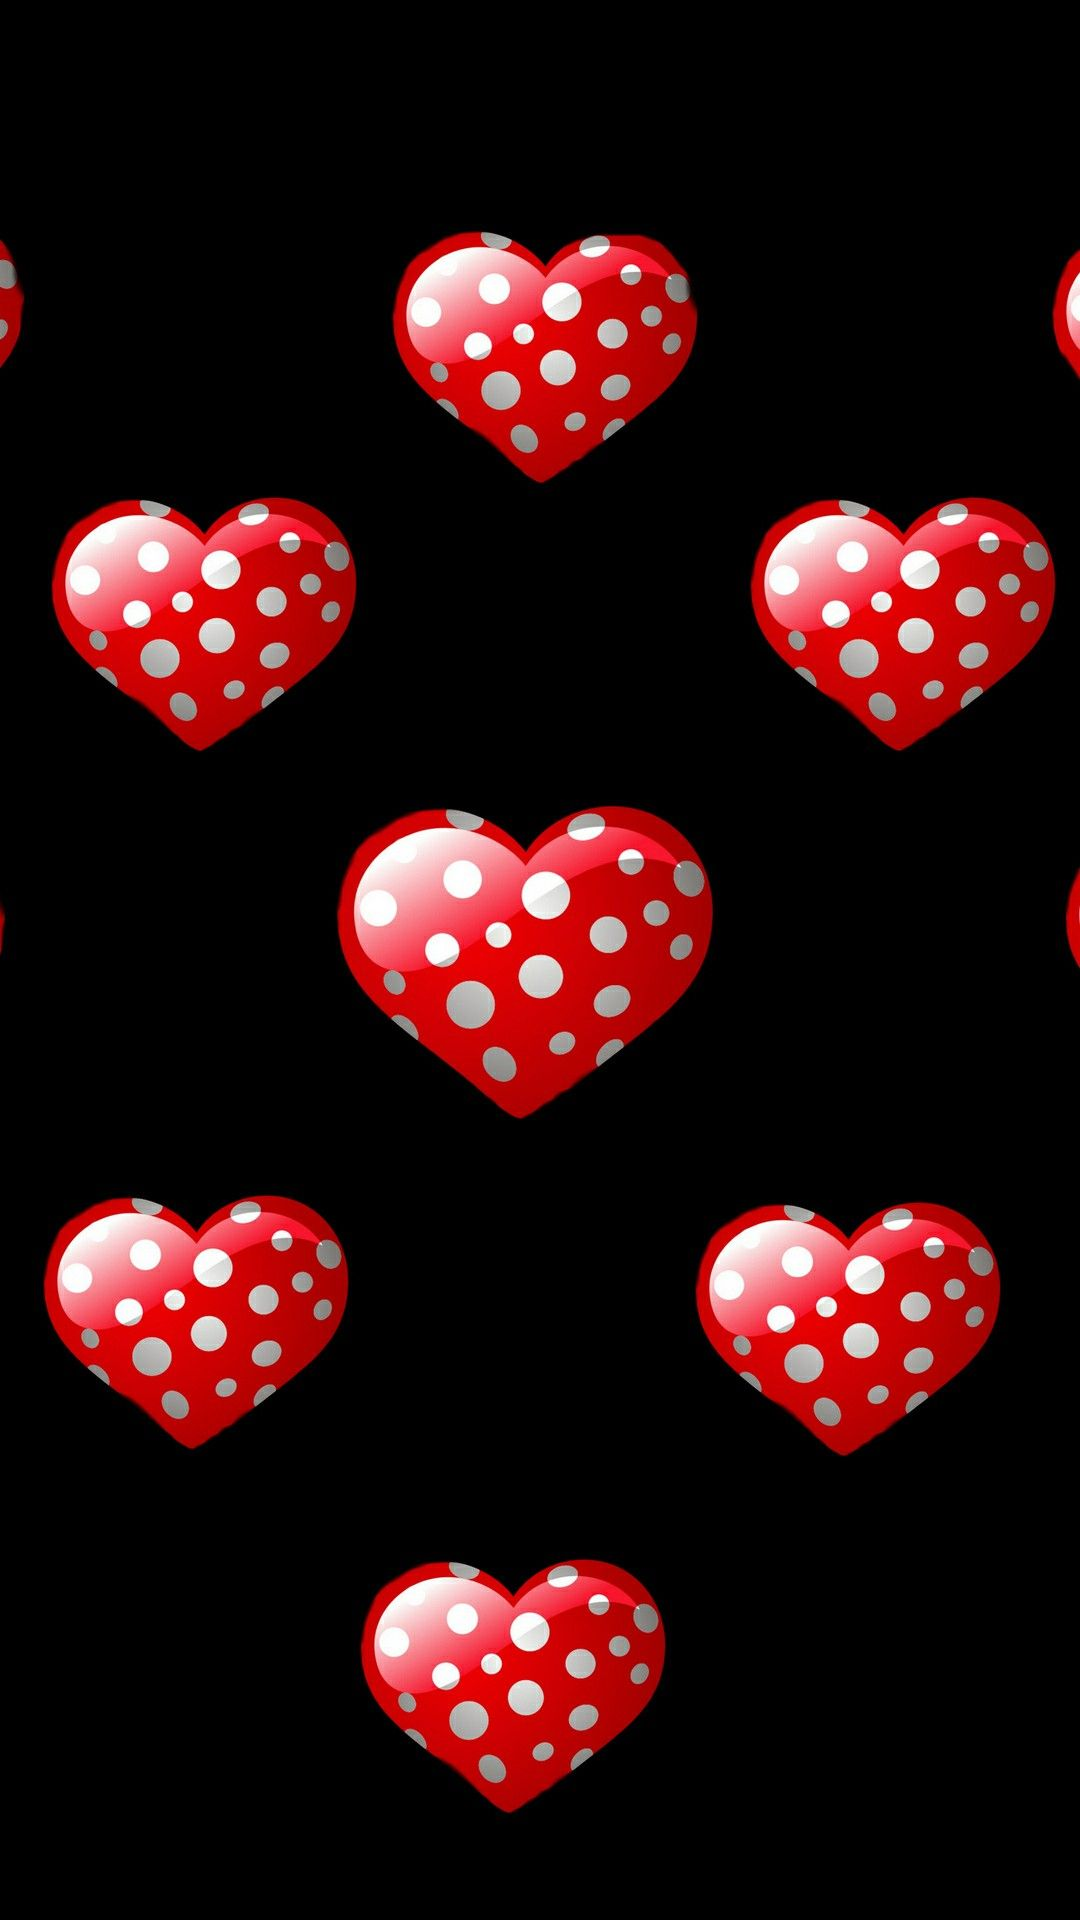 Red Poke A Dots Hearts Heart Wallpaper Love Wallpaper Dots Wallpaper